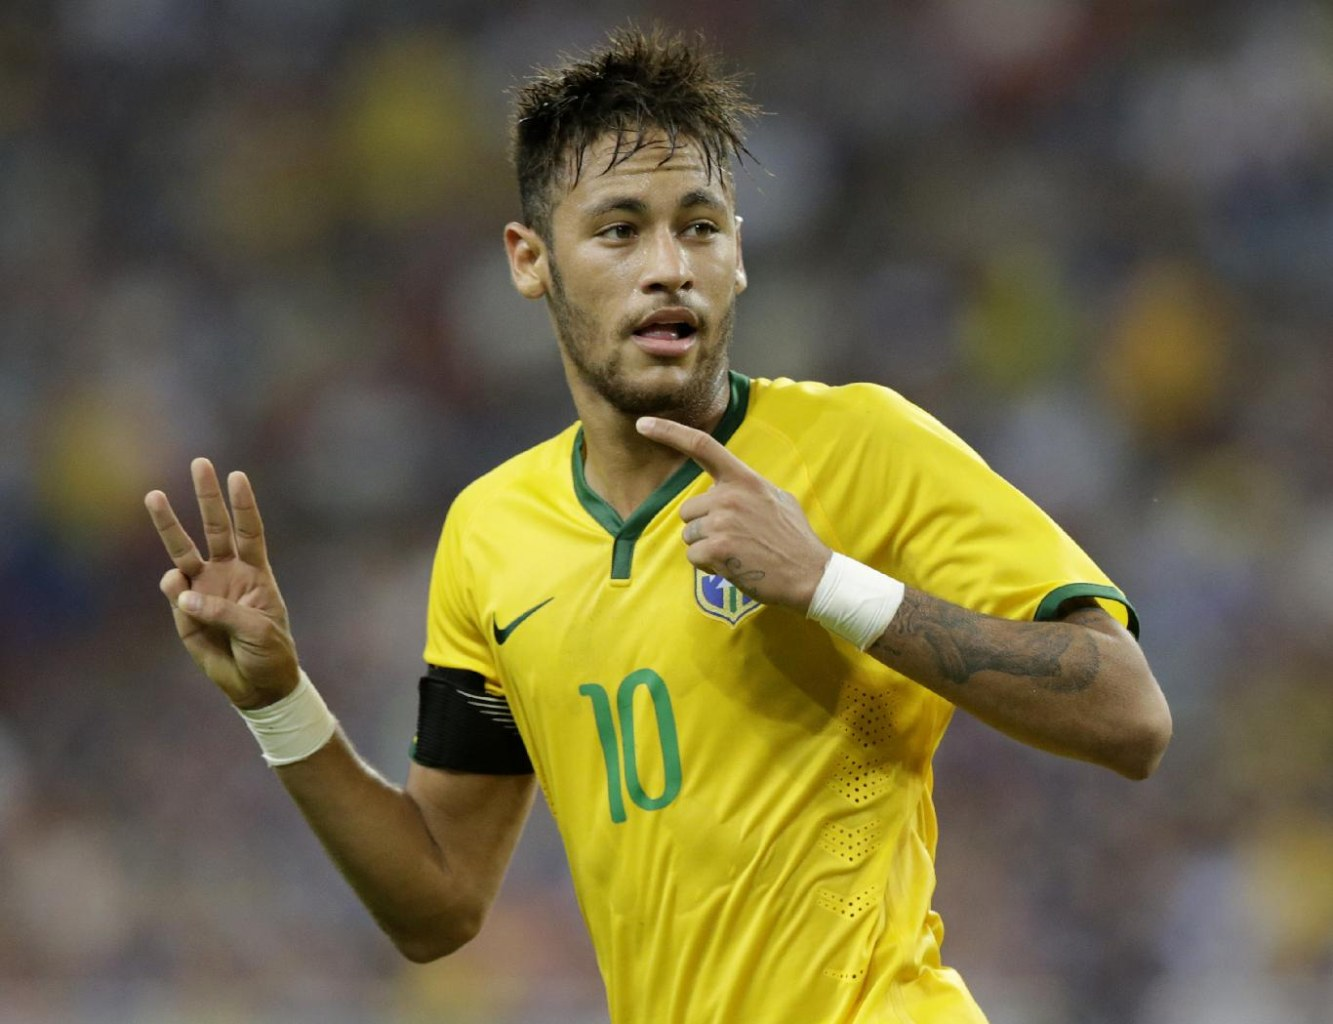 Neymar in the Brazilian National Team, in October of 2014